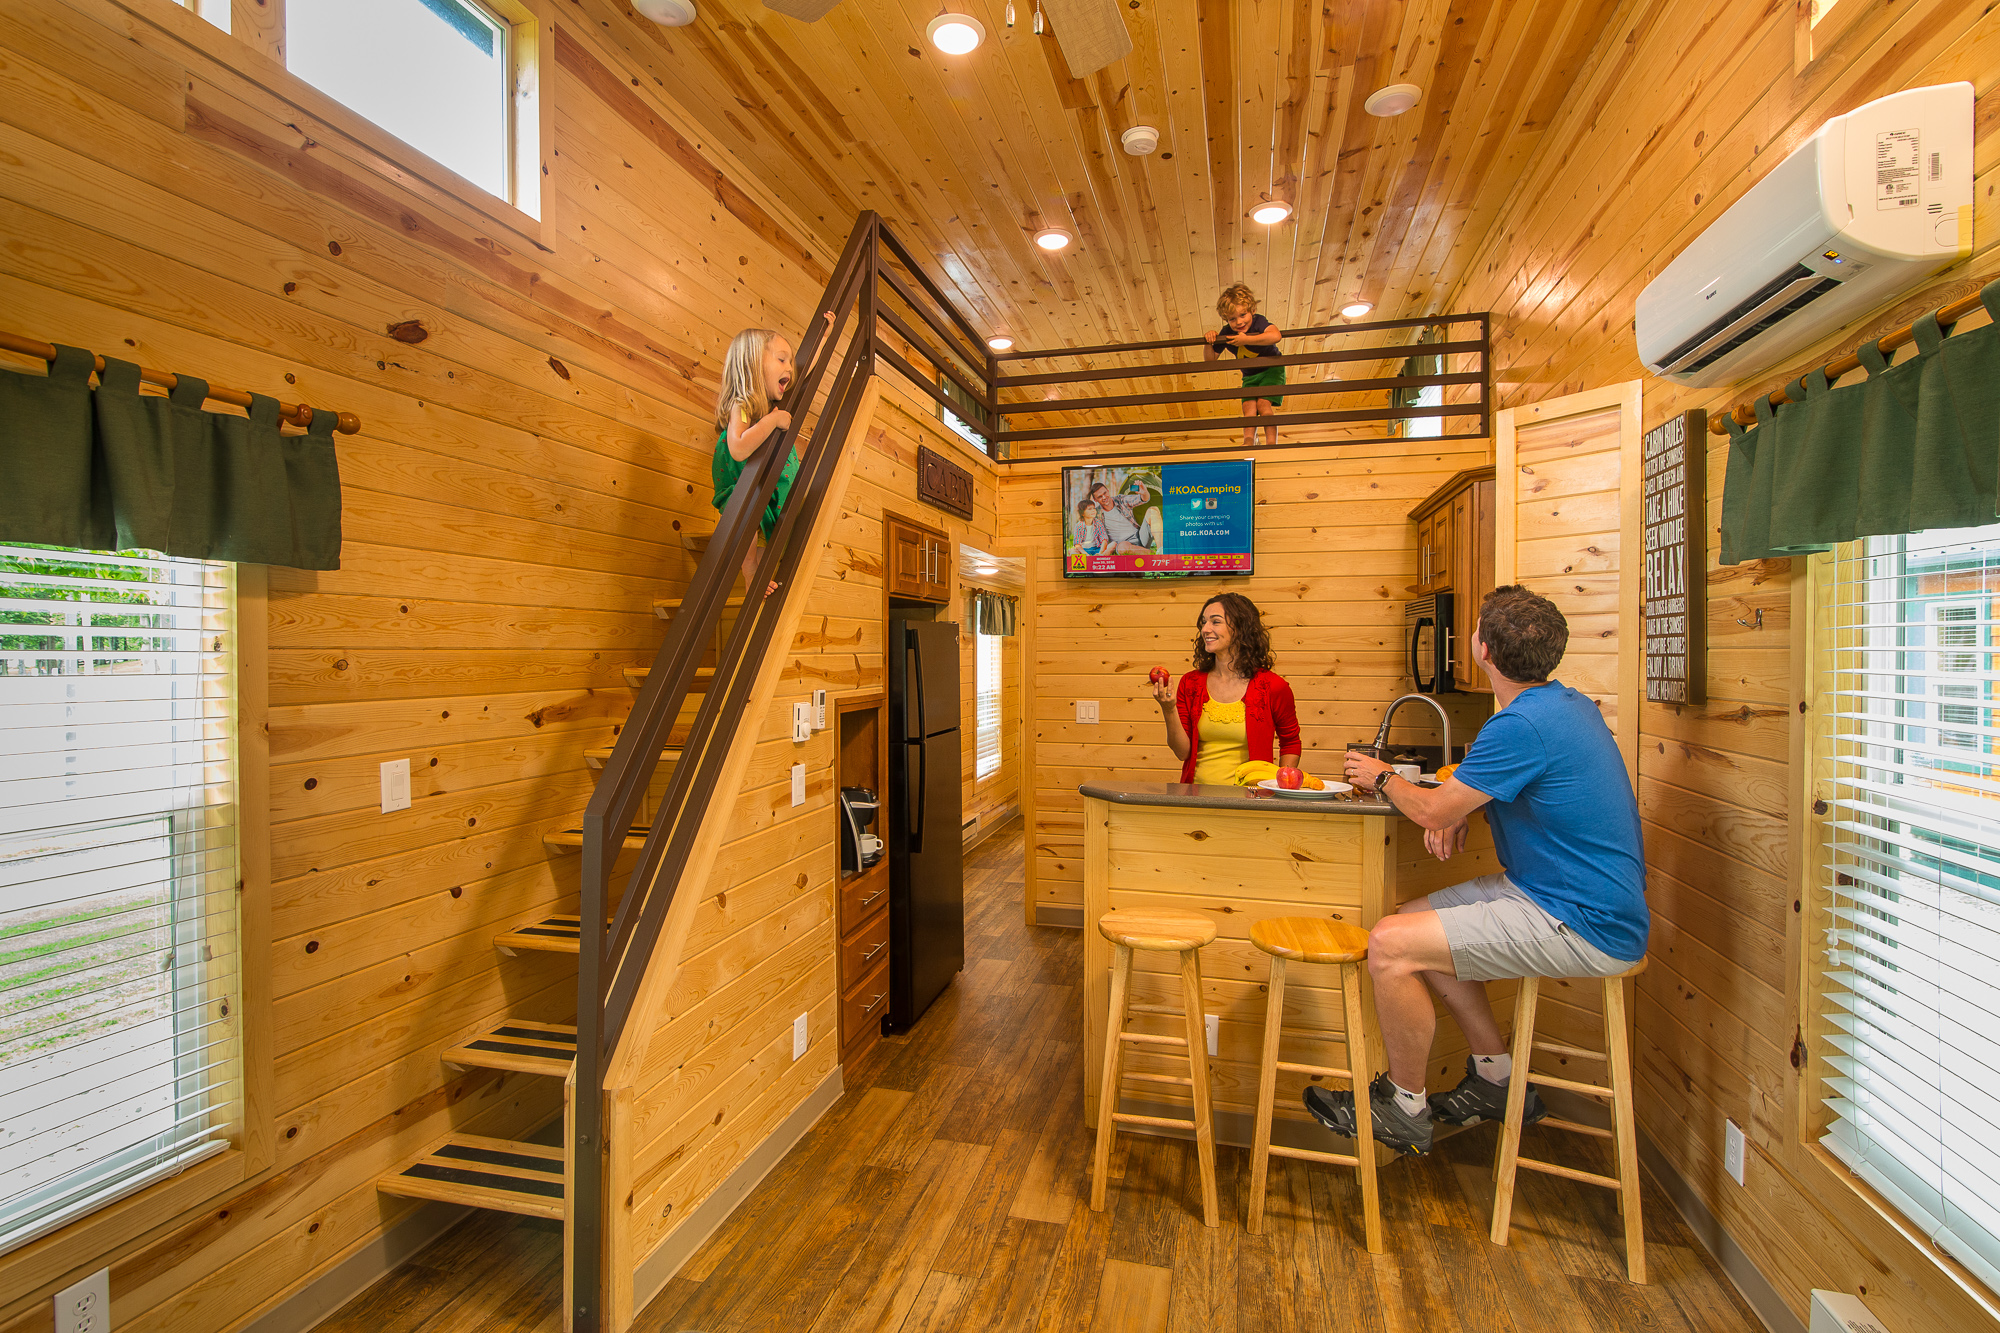 grand online cabins flagstaff in luxury canyon moose to book dcp area project cabin manor